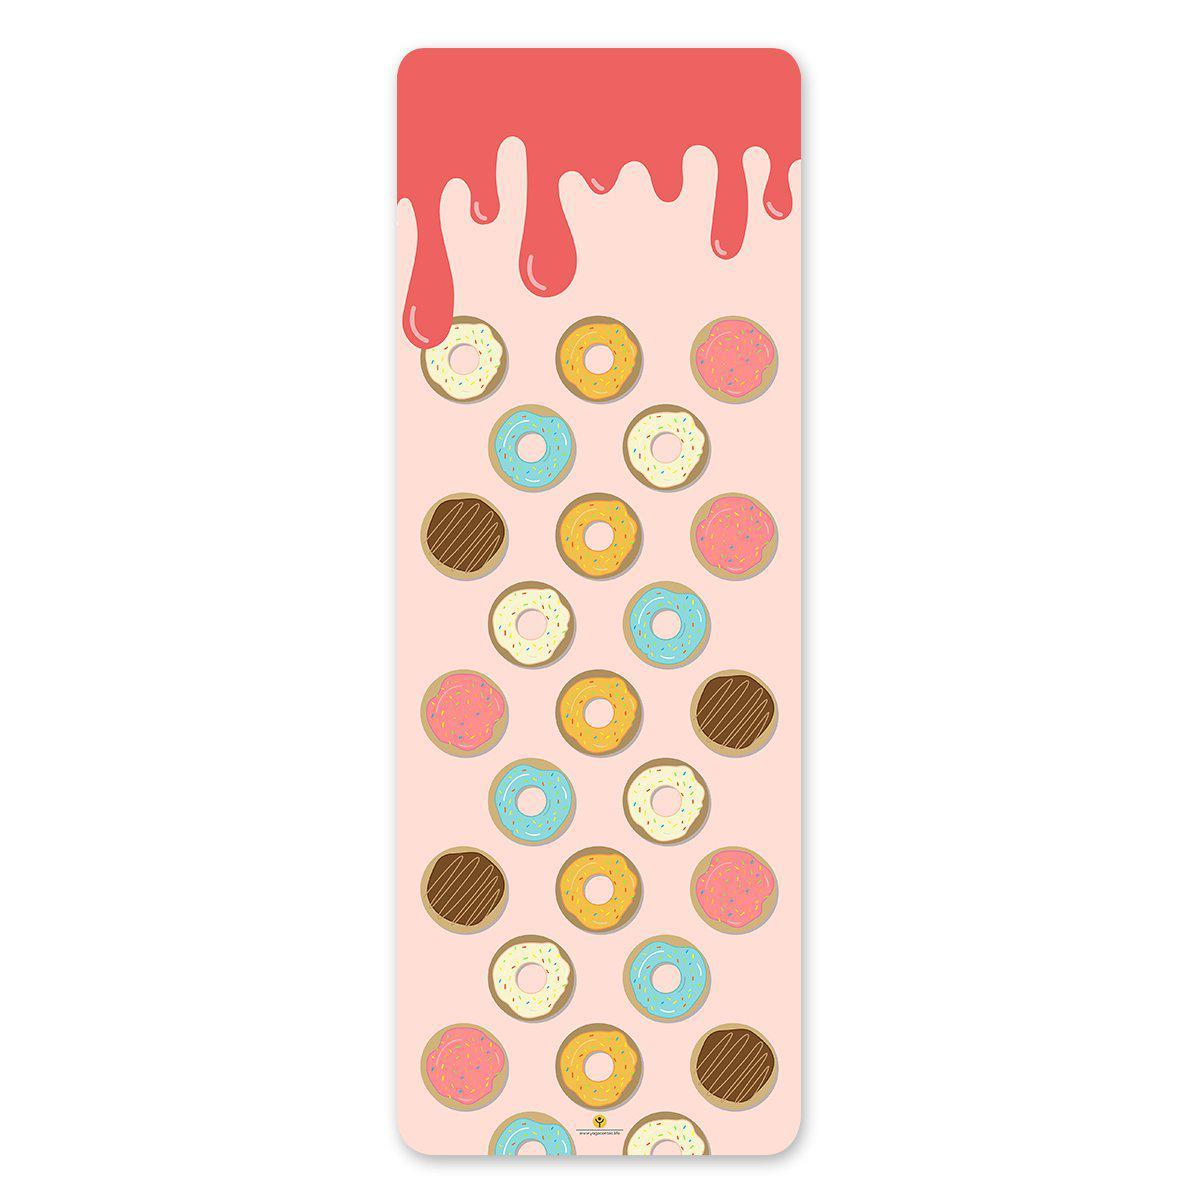 Delicious Donuts Yoga Mat - YogaCentric.life